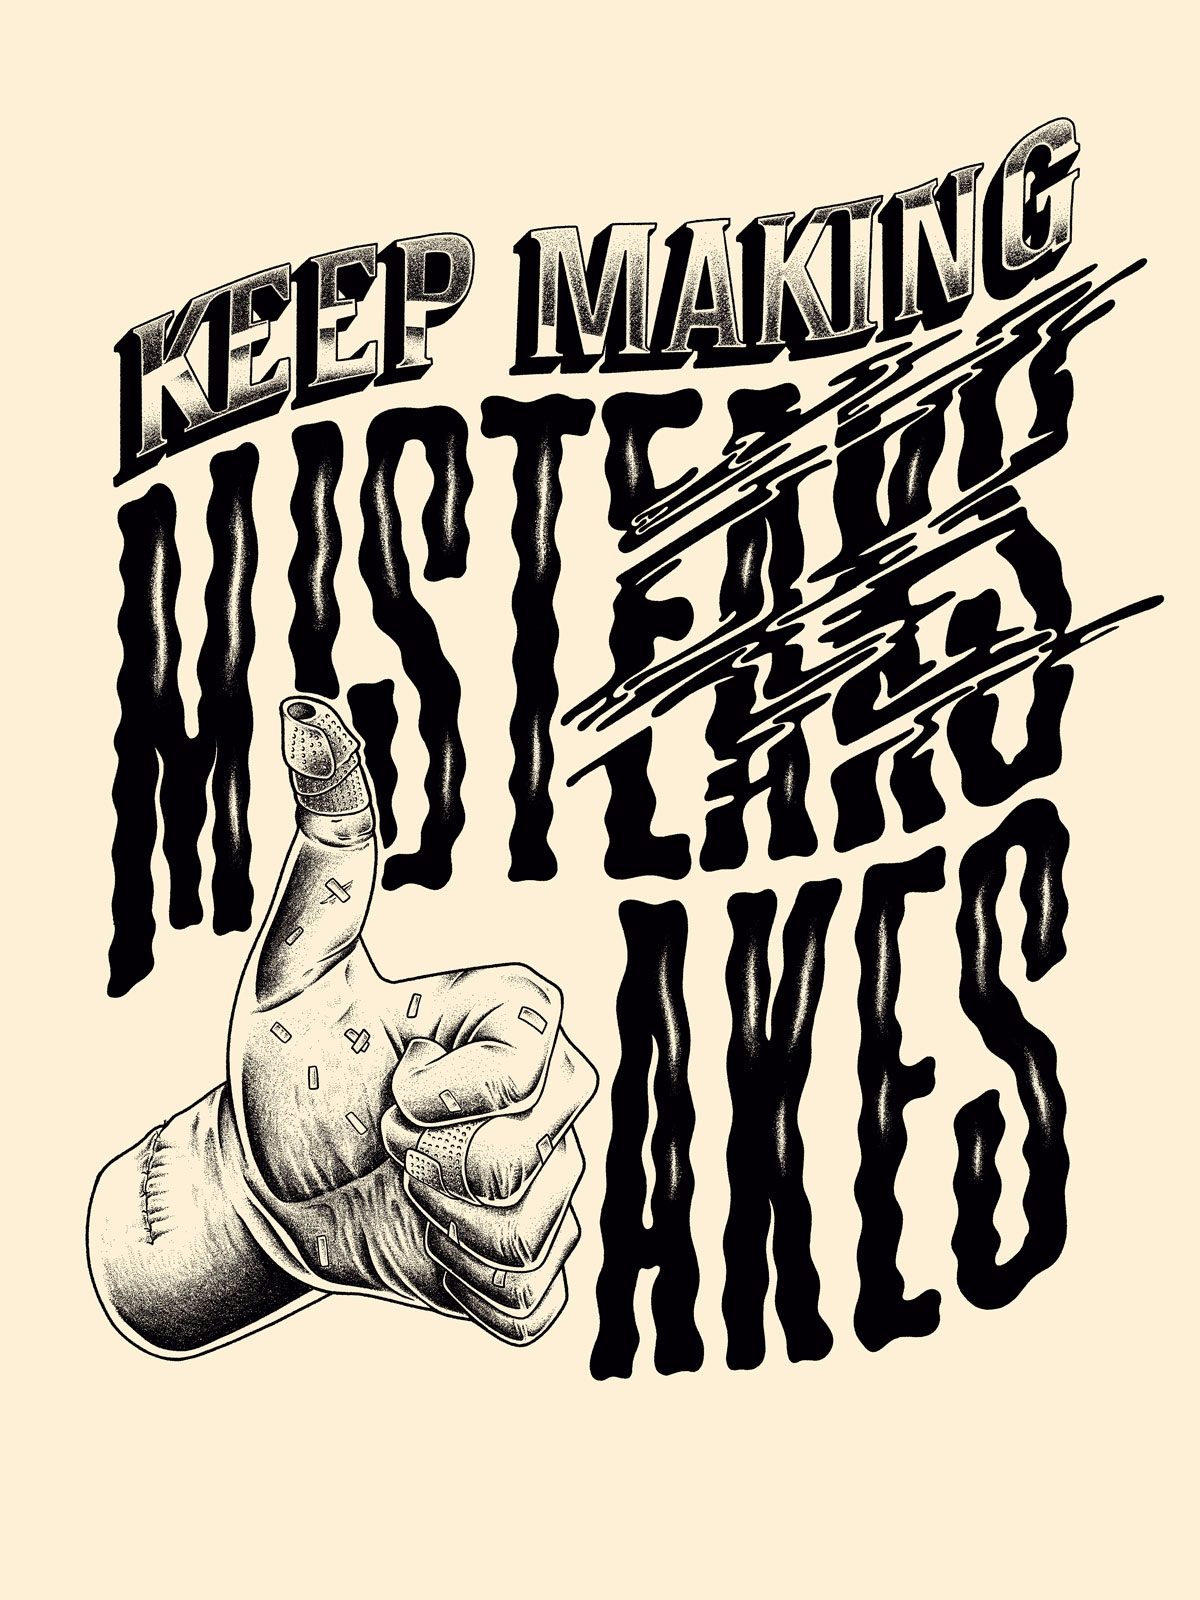 Making Mistakes - illustration, drawing - jferreirastudio | ello